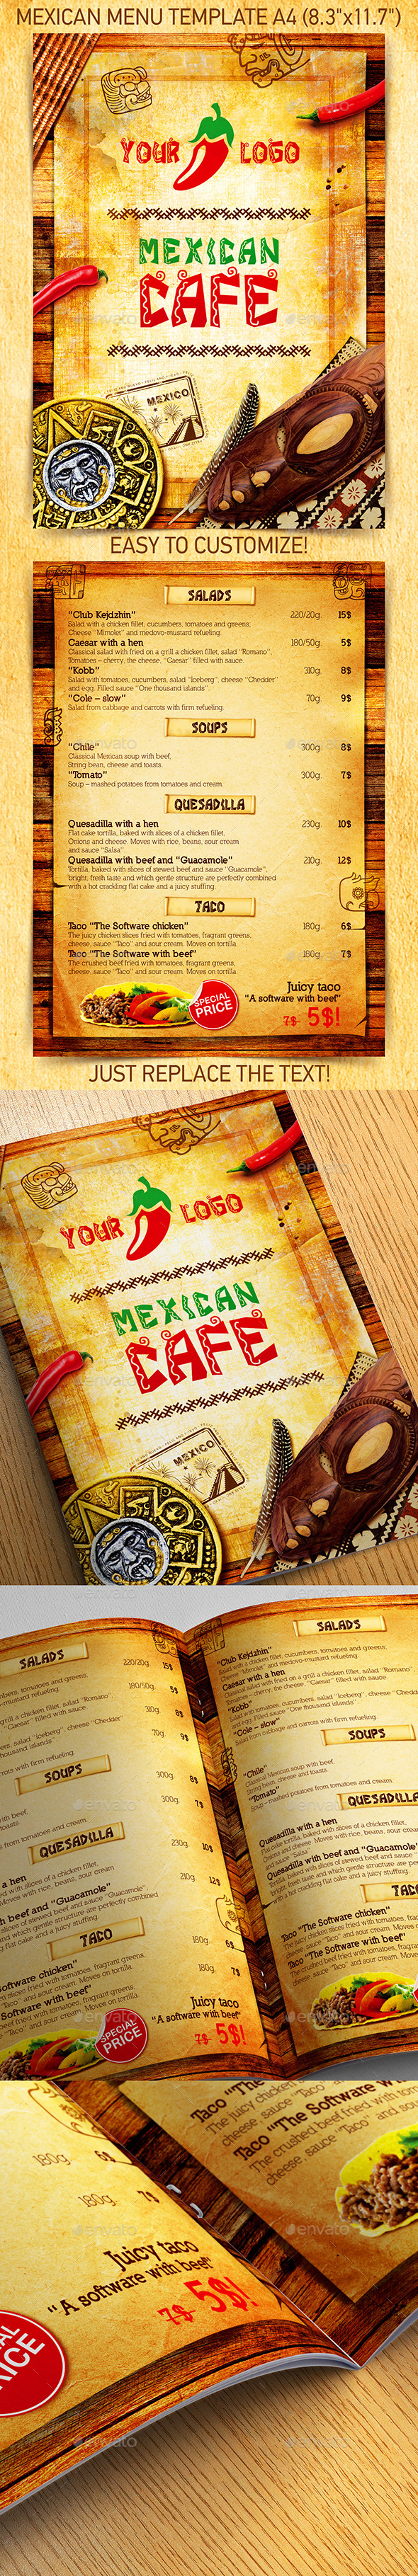 Mexican Menu Template vol.1 - Restaurant Flyers